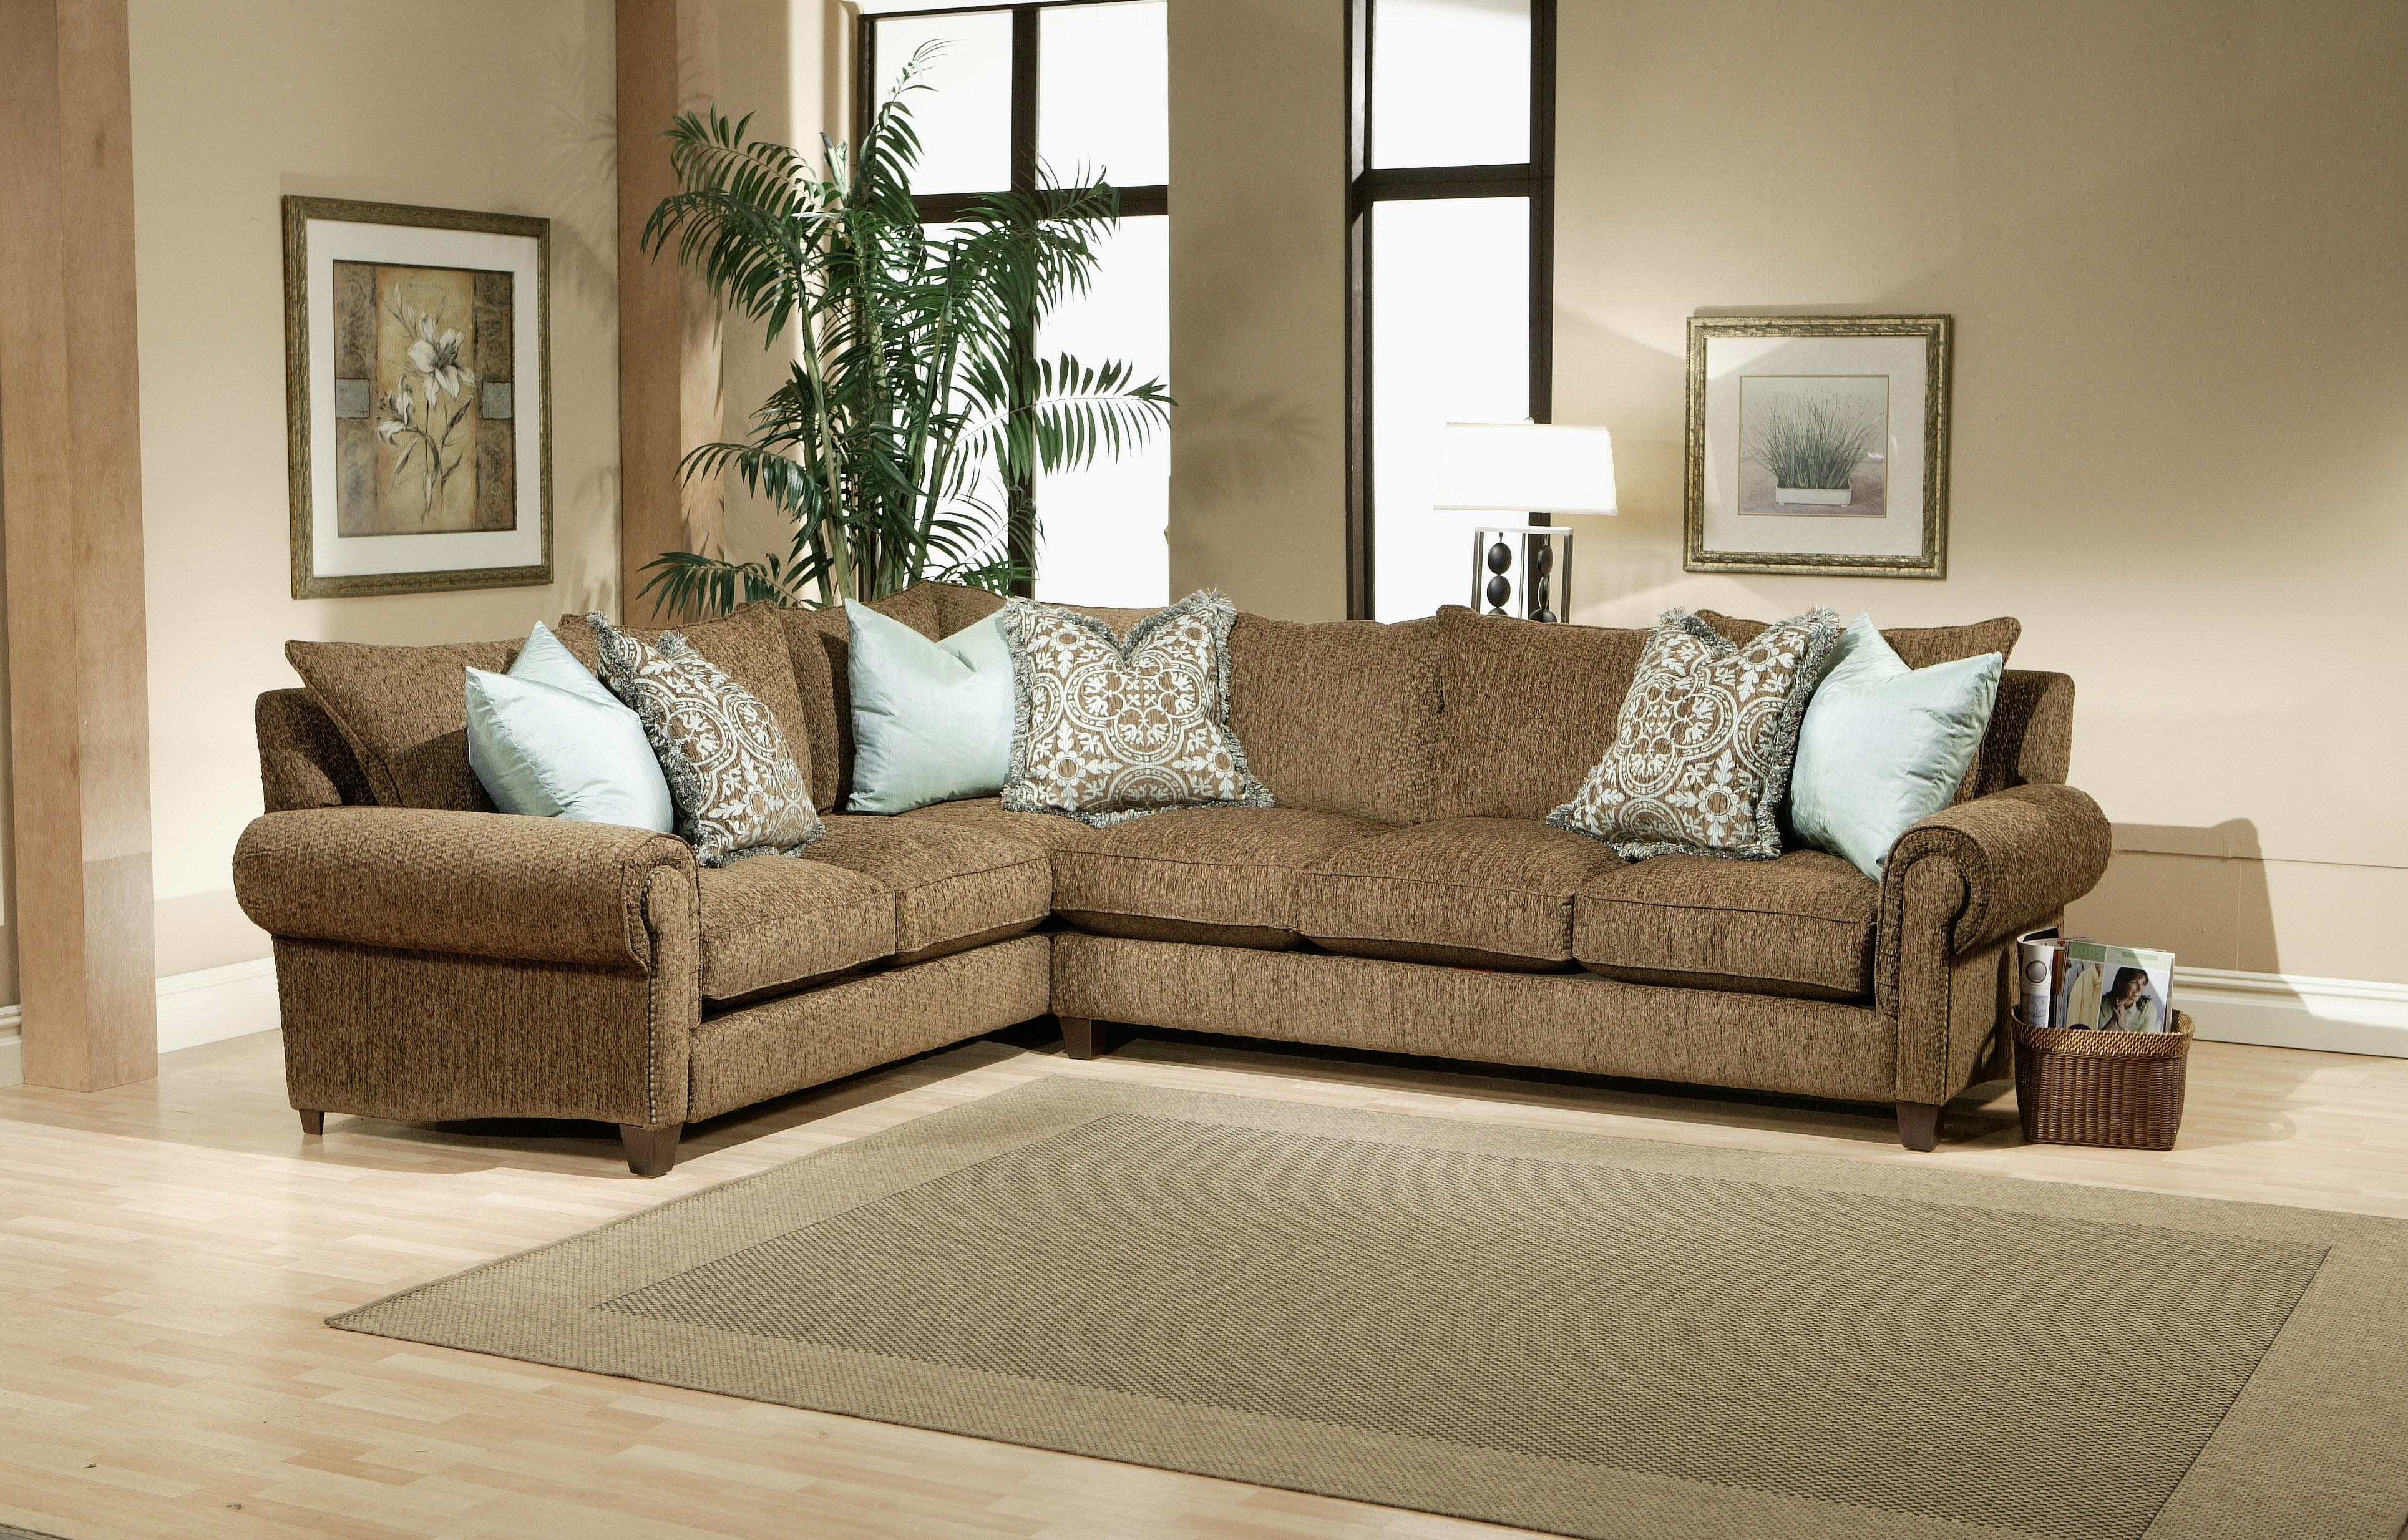 Robert Michael Rocky Mountain Love Seat And Sofa Sectional Furniturewebsite